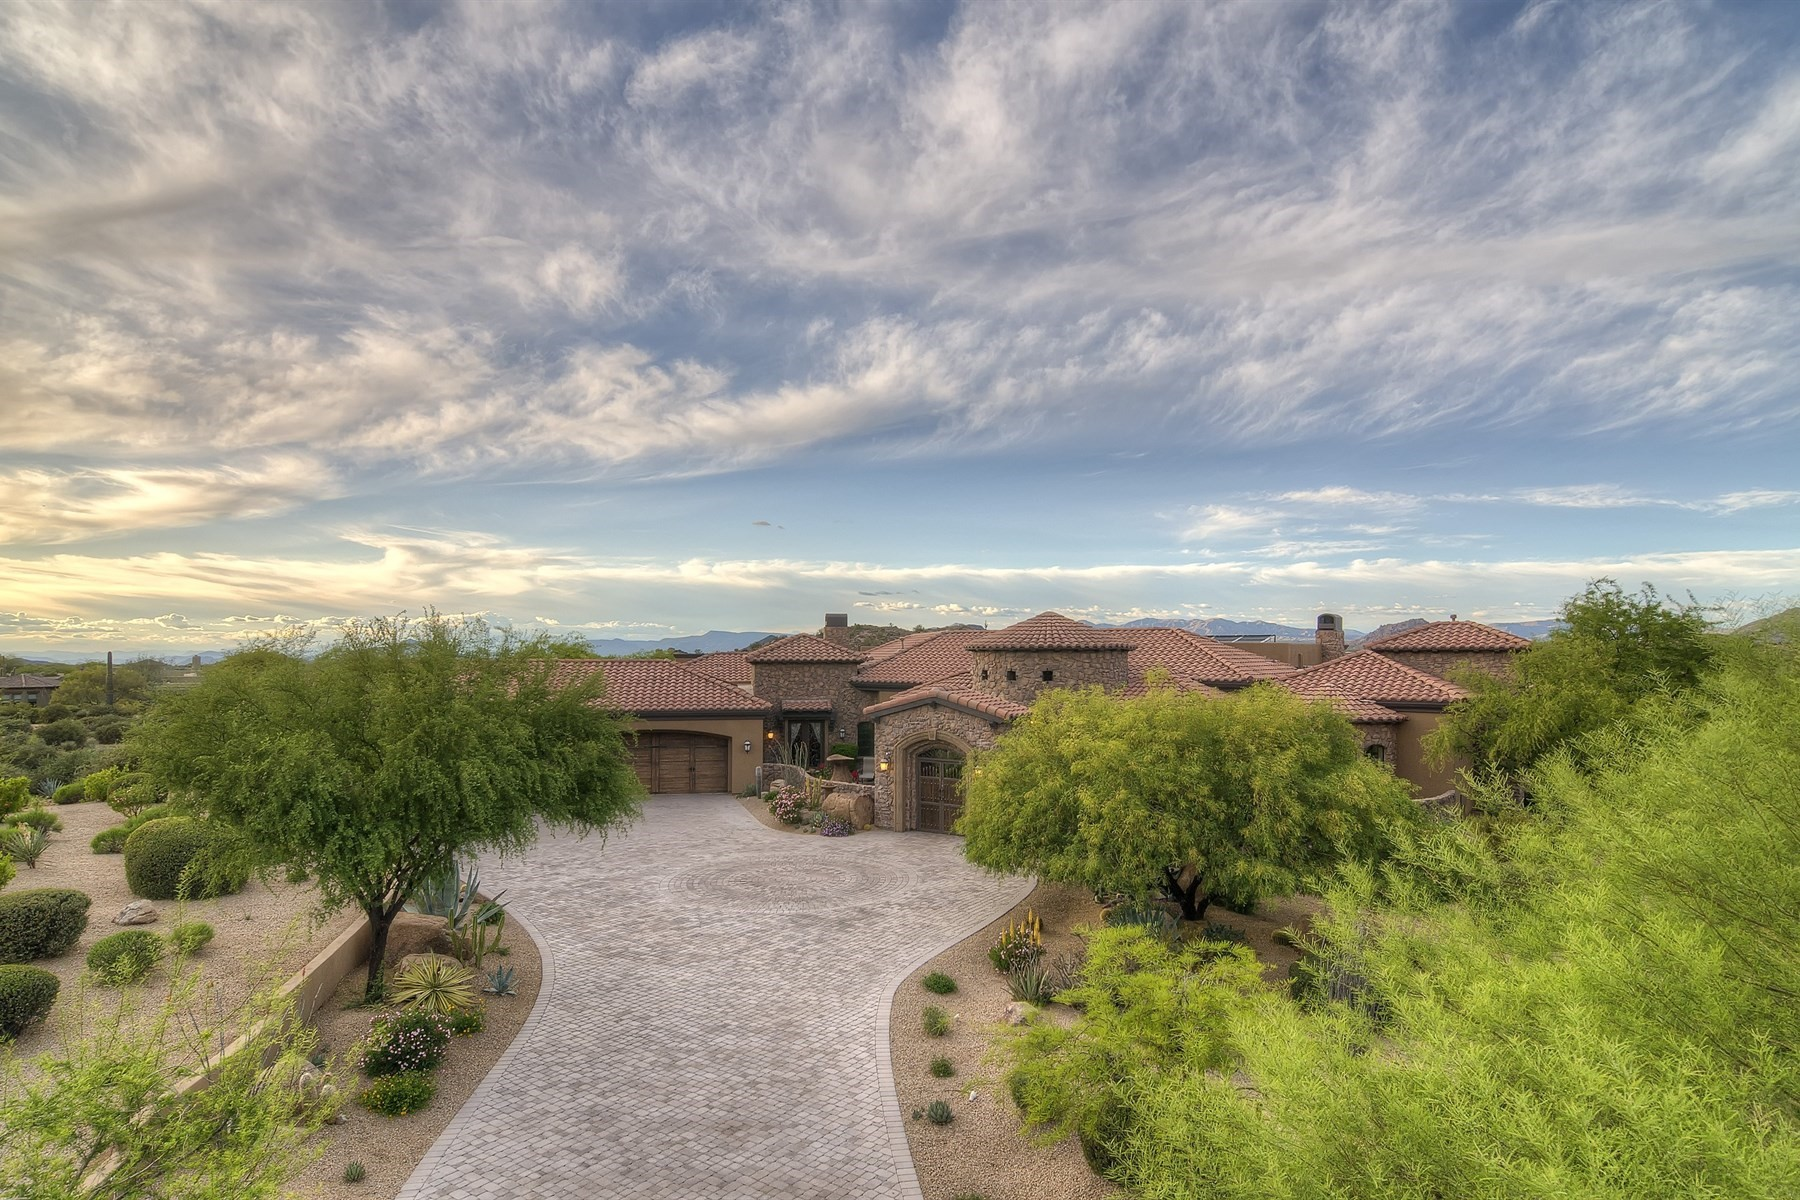 Single Family Home for Sale at Nothing Short of a Great Deal! 26868 N 117th Pl Scottsdale, Arizona, 85262 United States